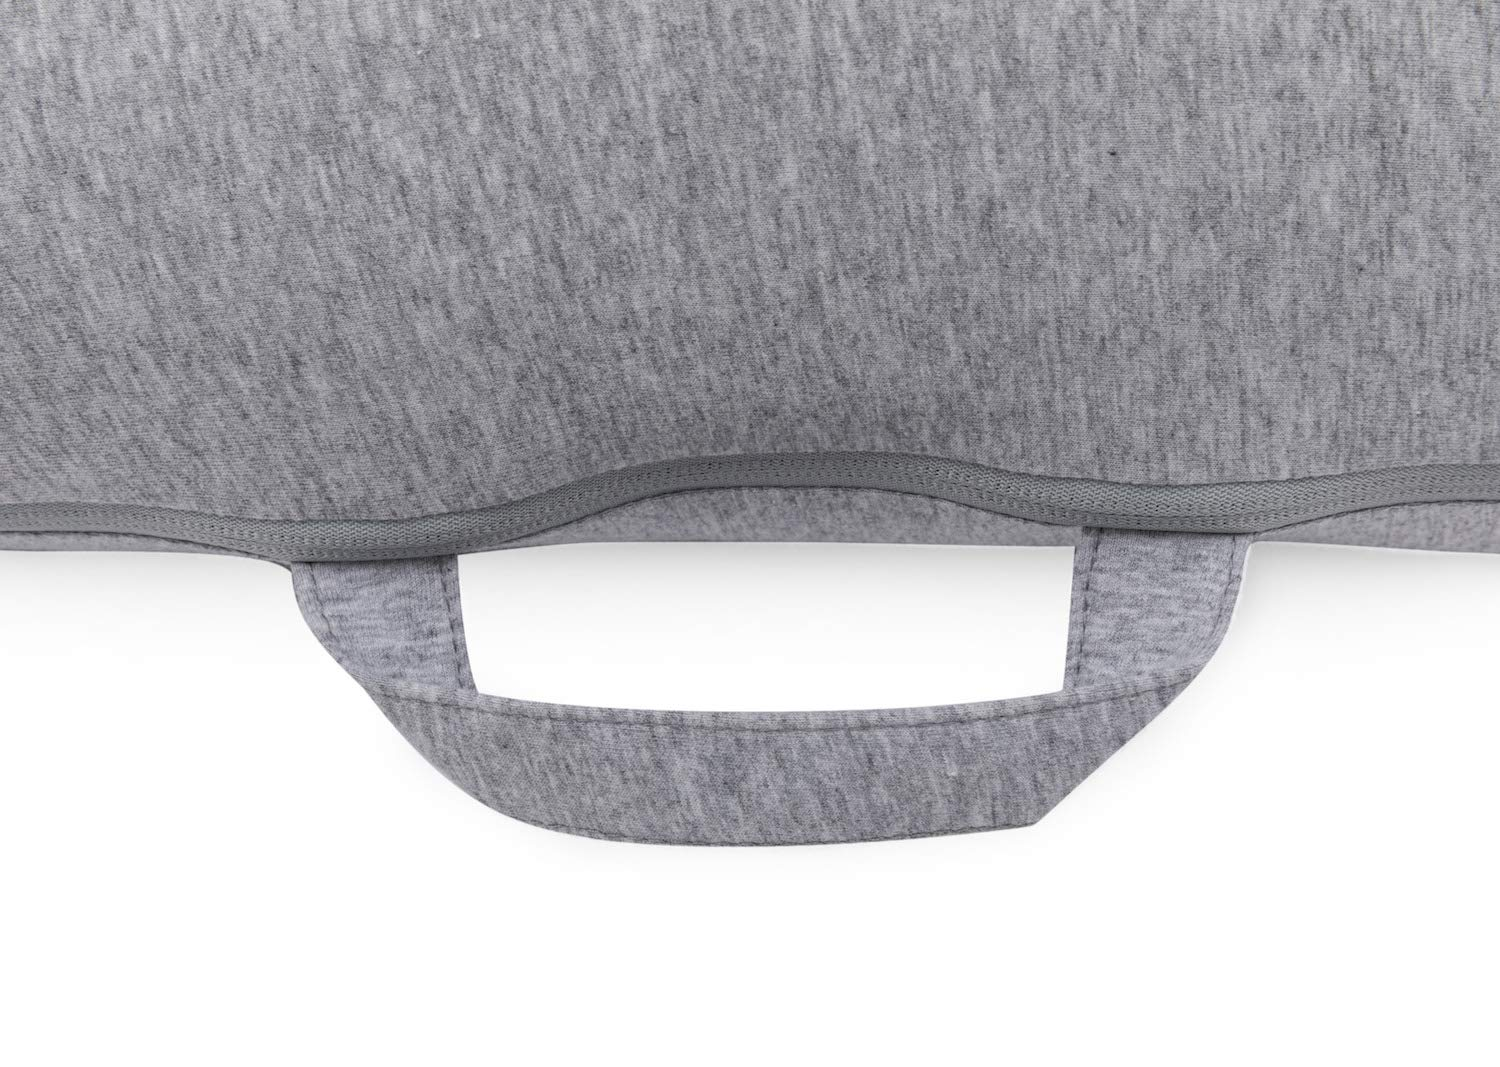 Purflo Breathable Maxi Nest Grey Marl - 6 to 36 Months PurFlo Use from 6 to 36 months as a multifunctional soft surface for quiet, mummy and rest time. Portable and lightweight; perfect for use home and away Hypoallergenic and anti-bacterial properties help reduce exposure to dust mites that aggravate allergies such as Asthma or Eczema. Waterproof inside base, protecting against leaks 4